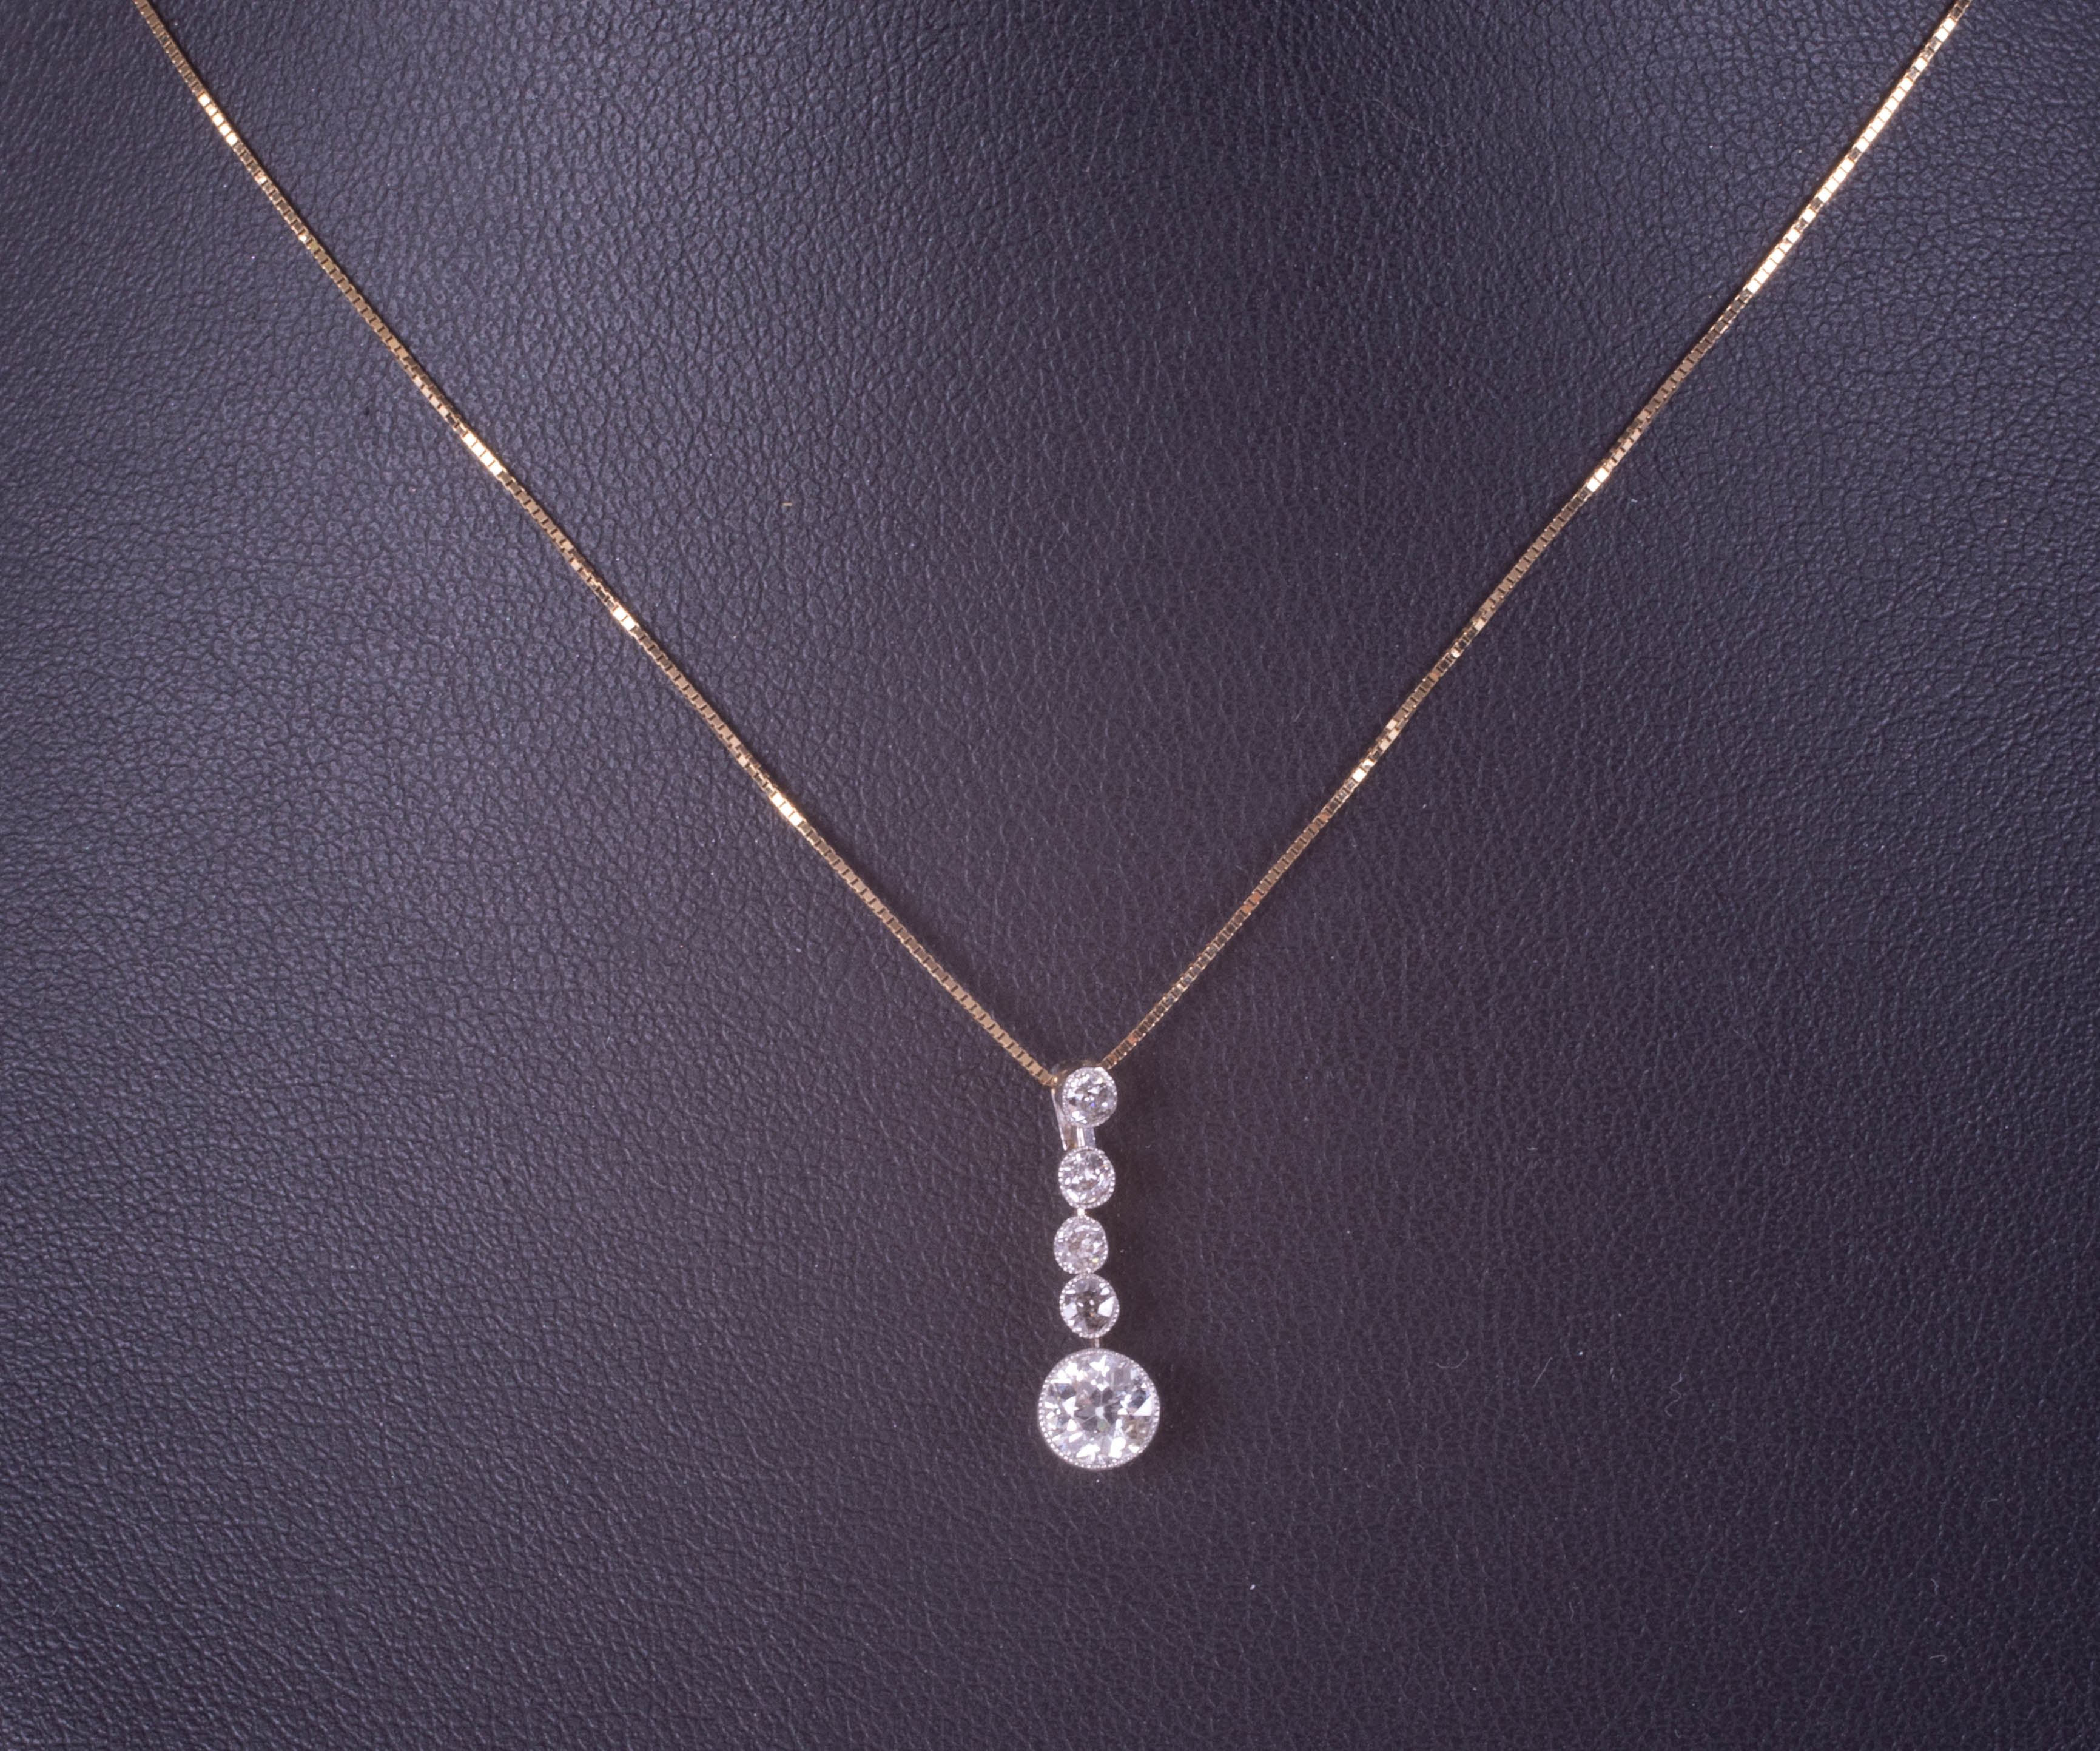 A five stone diamond pendant necklace, early 20th century, on fine chain. - Image 2 of 2